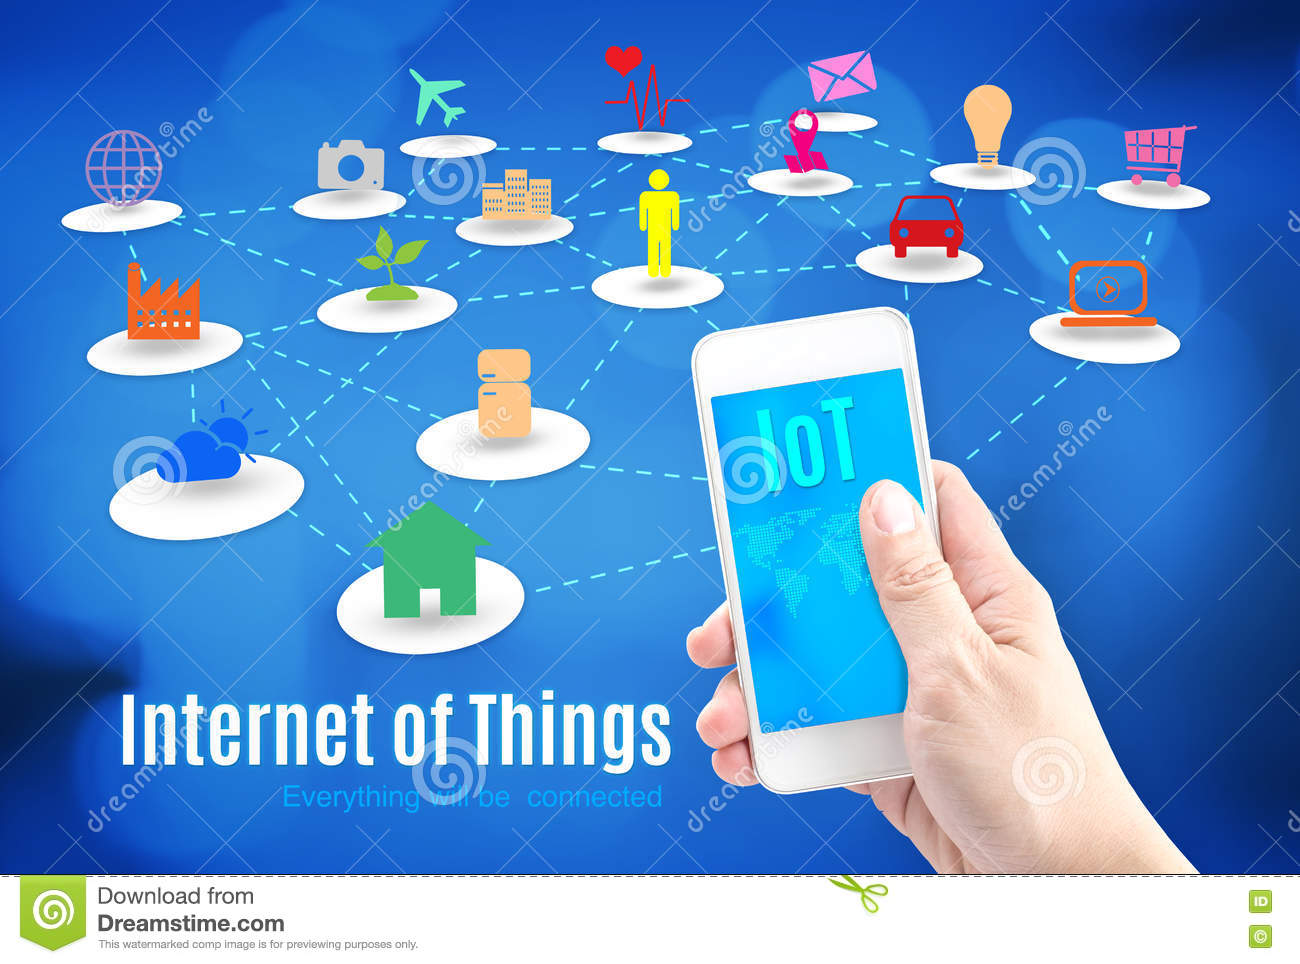 Hand holding smart phone with Internet of things (IoT) word and